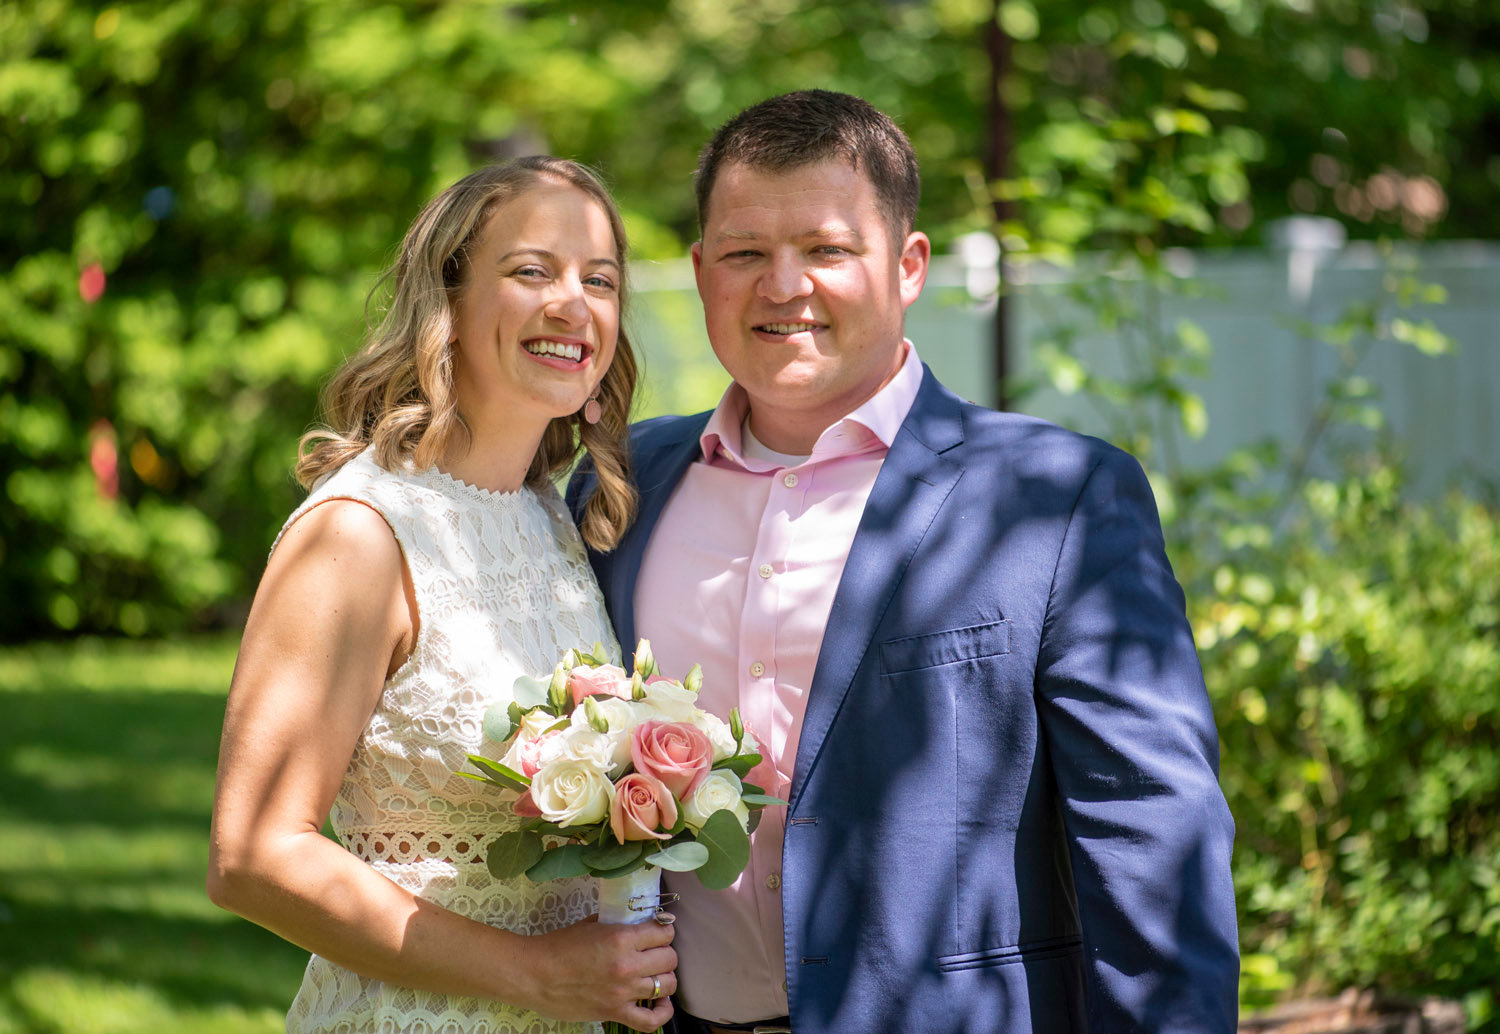 Shane Malone and Kristin Glocksien, of Long Beach, recently married in an intimate, socially distant backyard wedding in Baldwin last month.